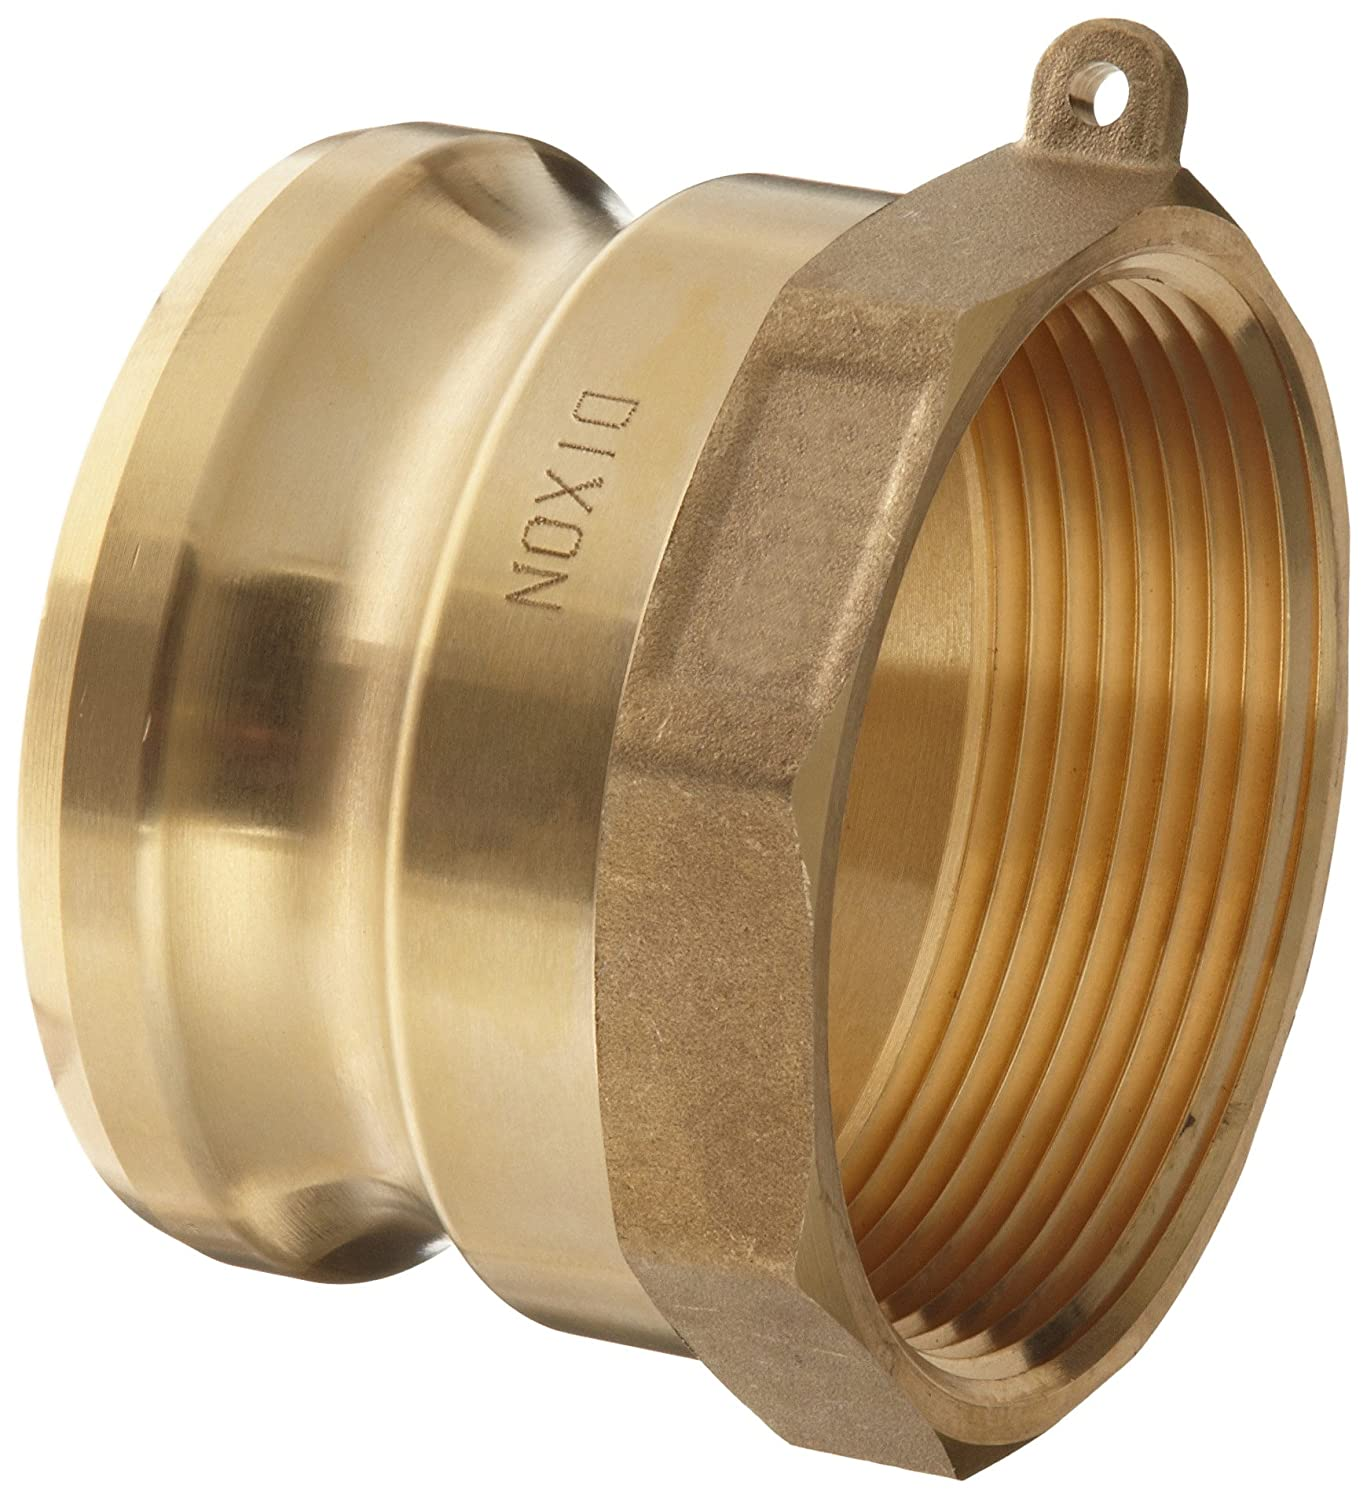 1 Plug x 1 NPT Female Dixon G100-A-BR ASTMC 38000 Forged Brass Global Type A Cam and Groove Hose Fitting